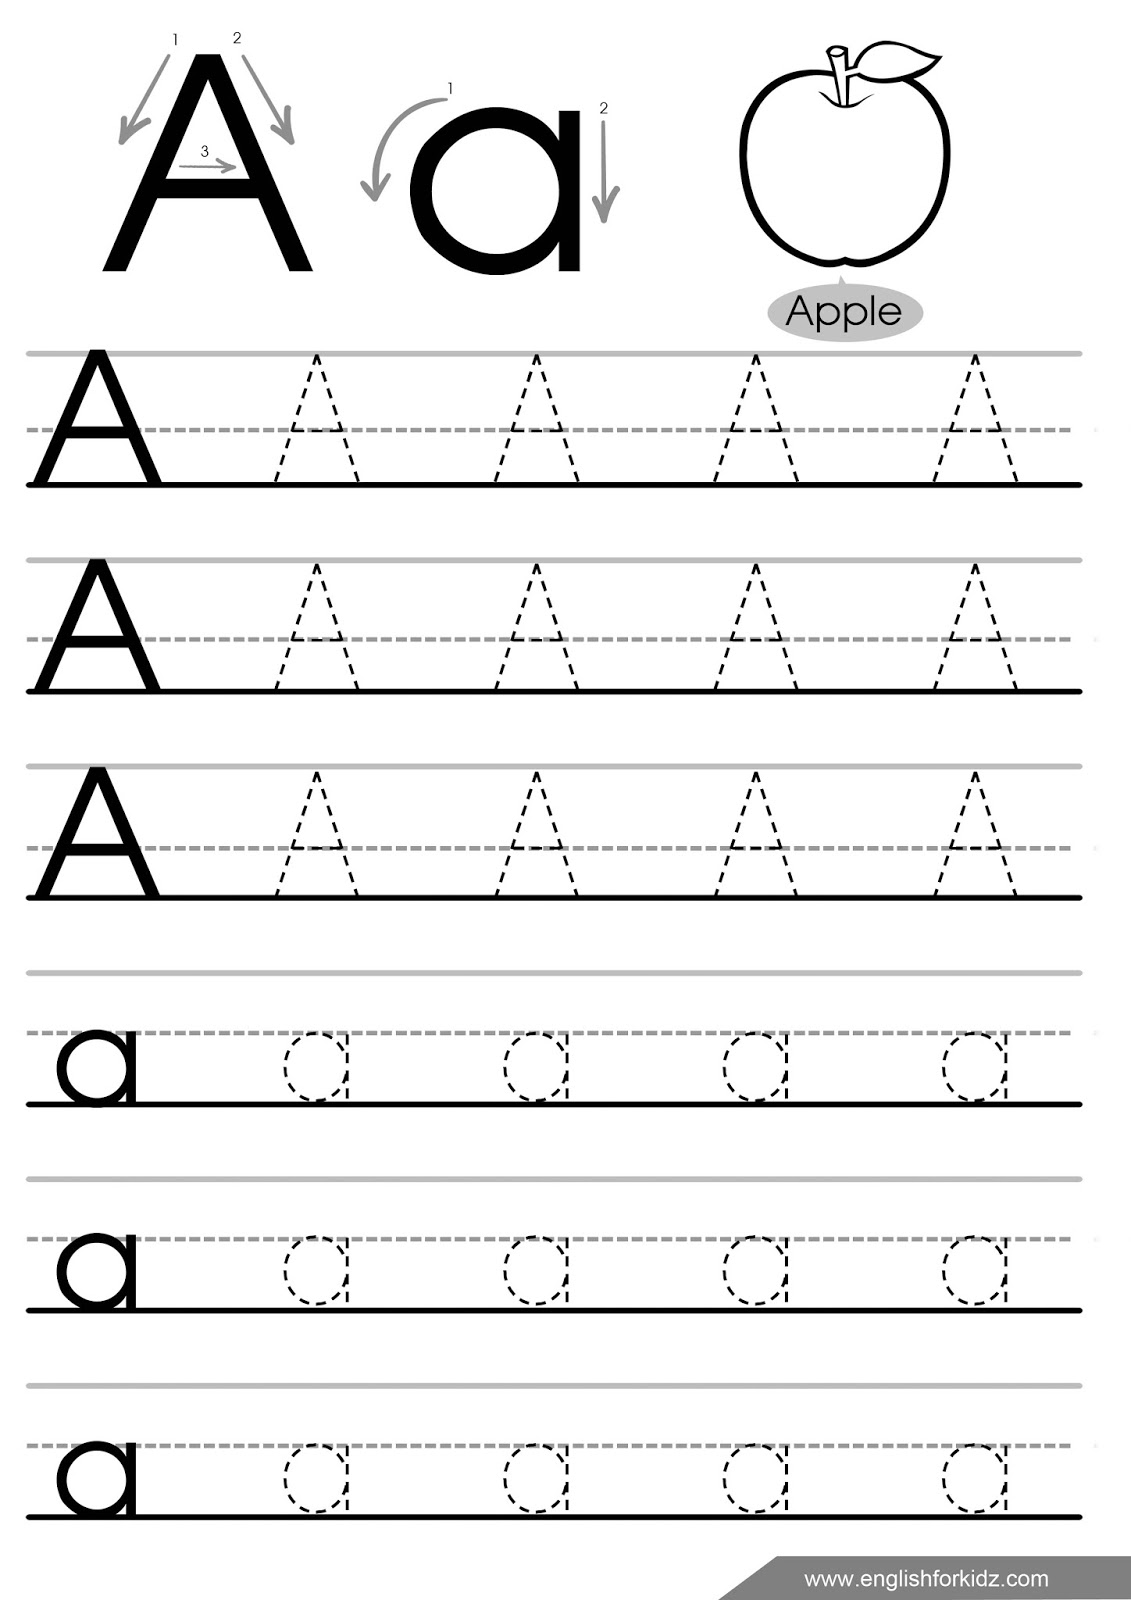 Tracing alphabet printables for preschoolers